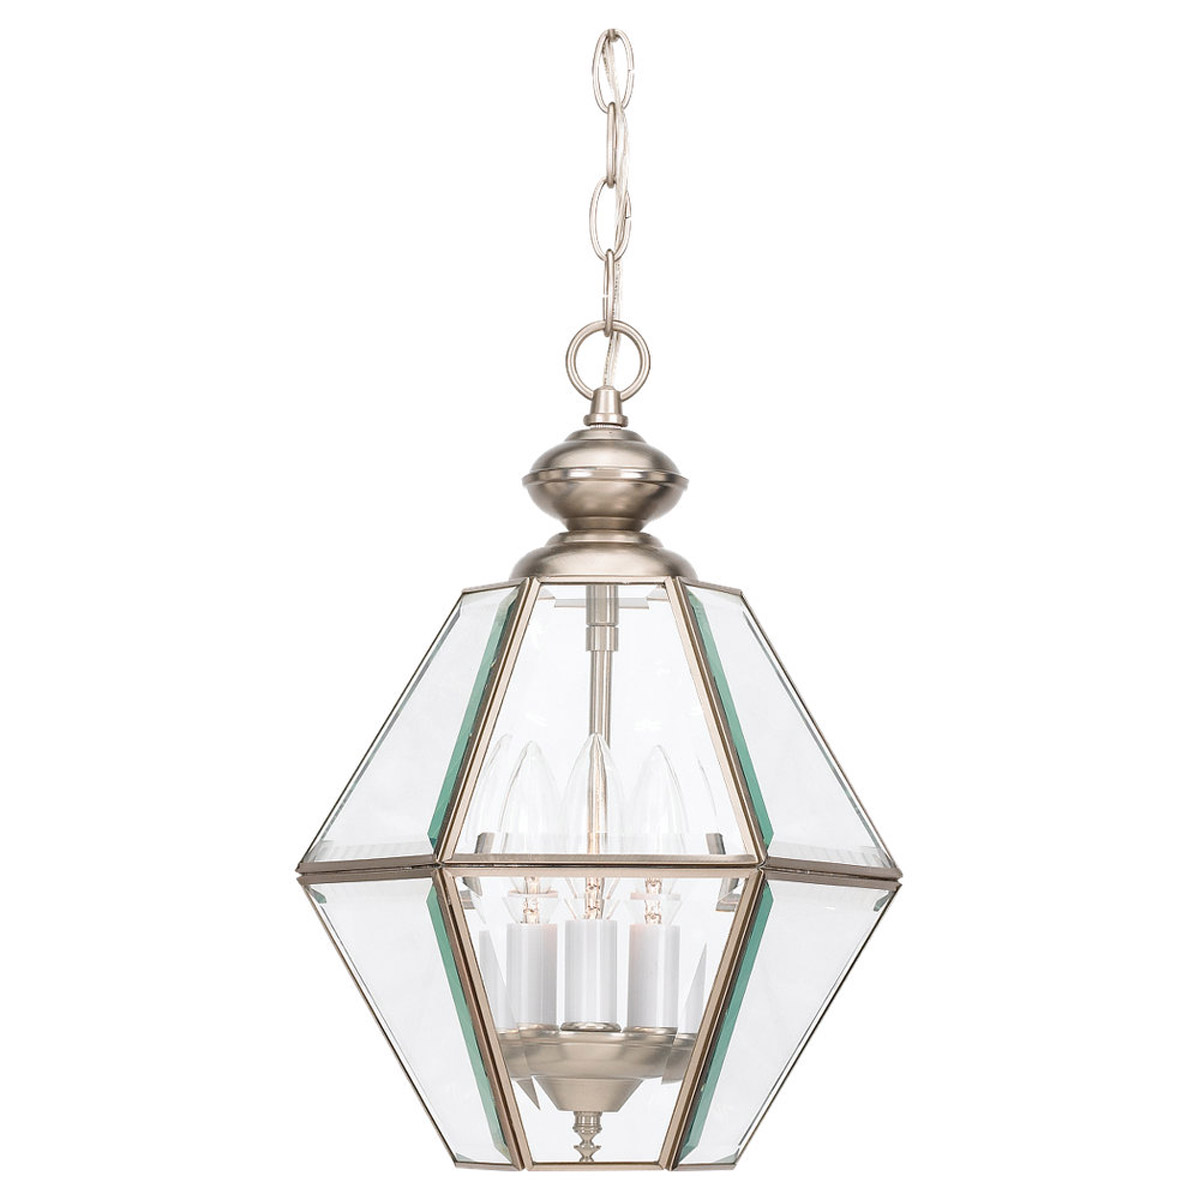 Sea Gull Lighting Grandover 3 Light Foyer Pendant in Brushed Nickel 5116-962 photo